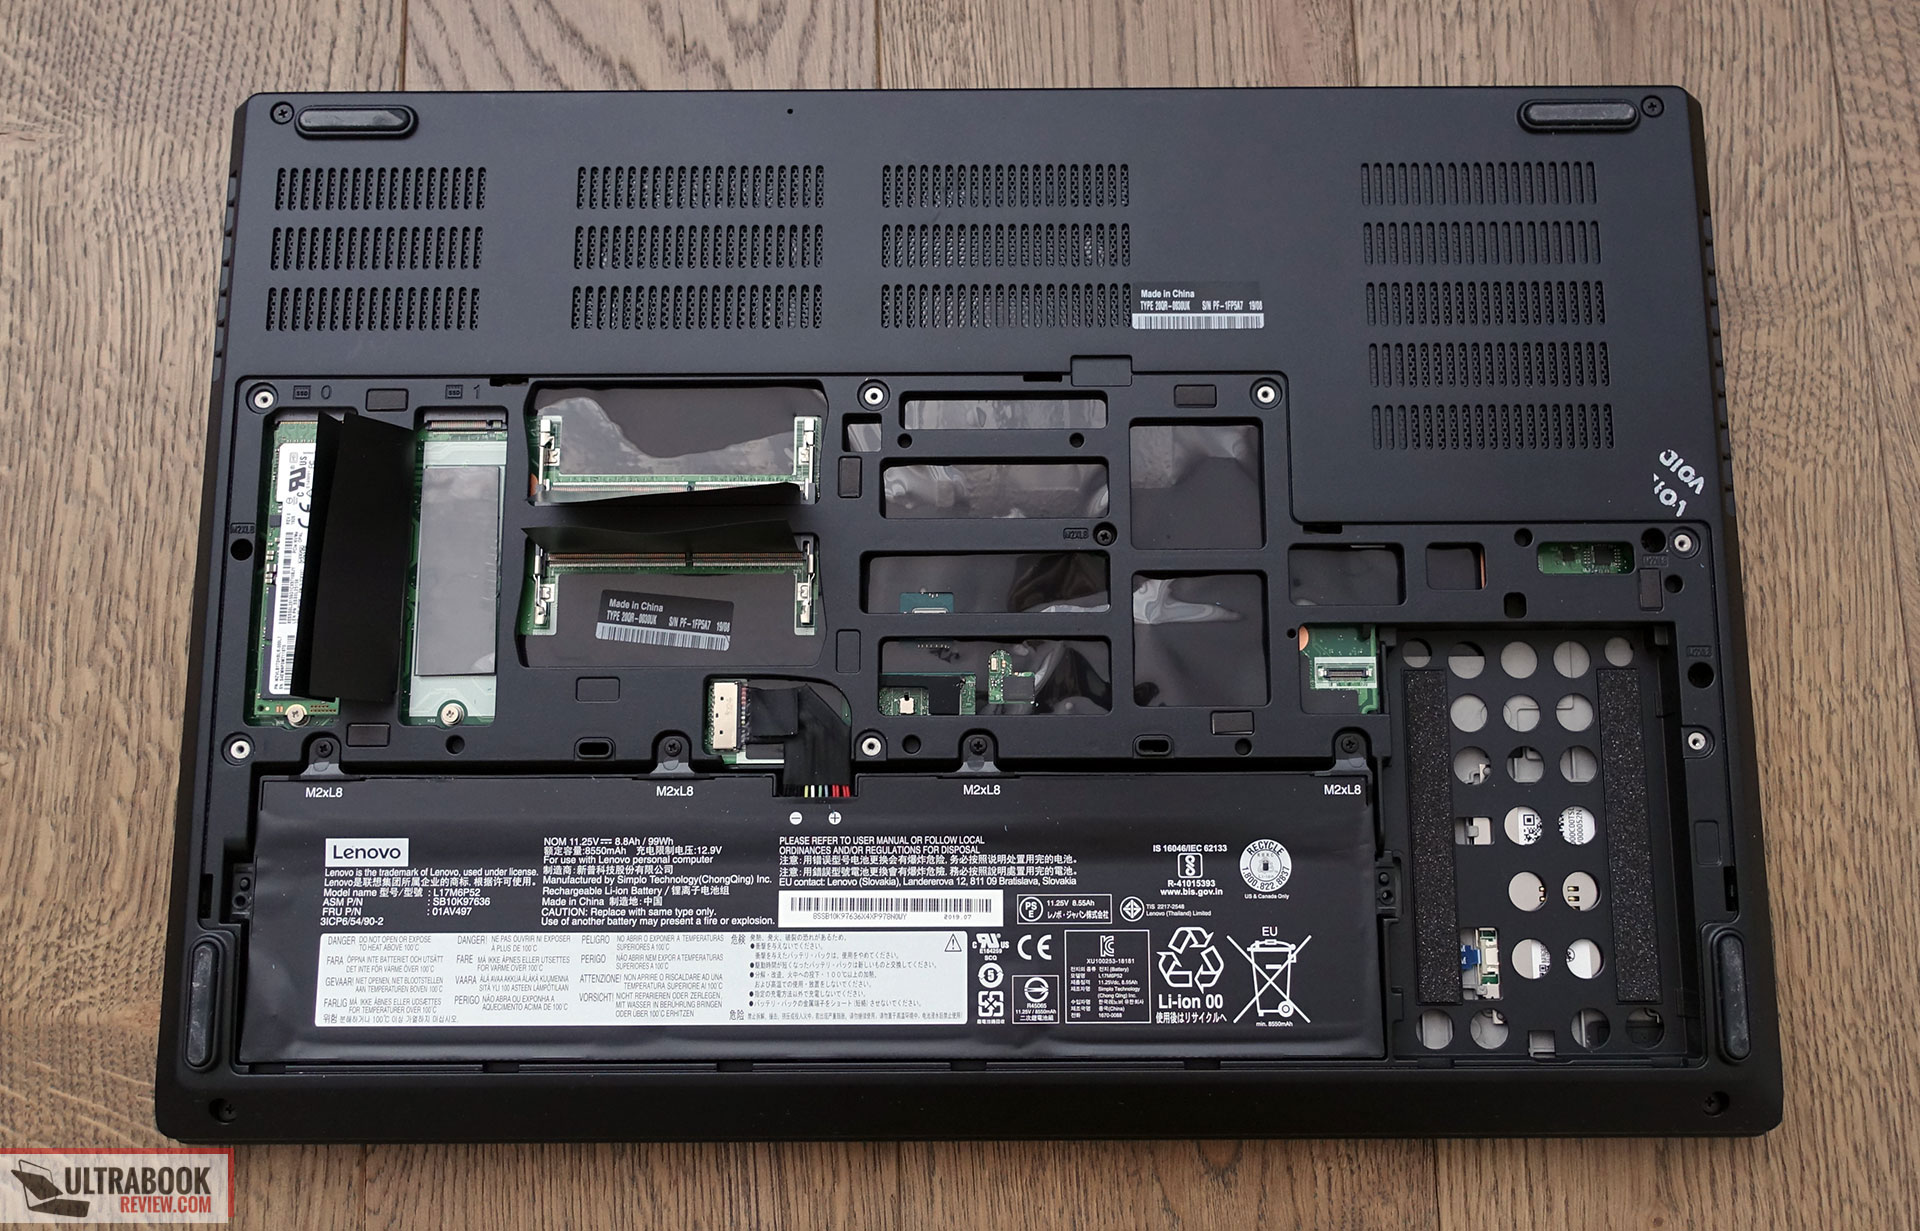 Lenovo ThinkPad P73 - internals and disassembly